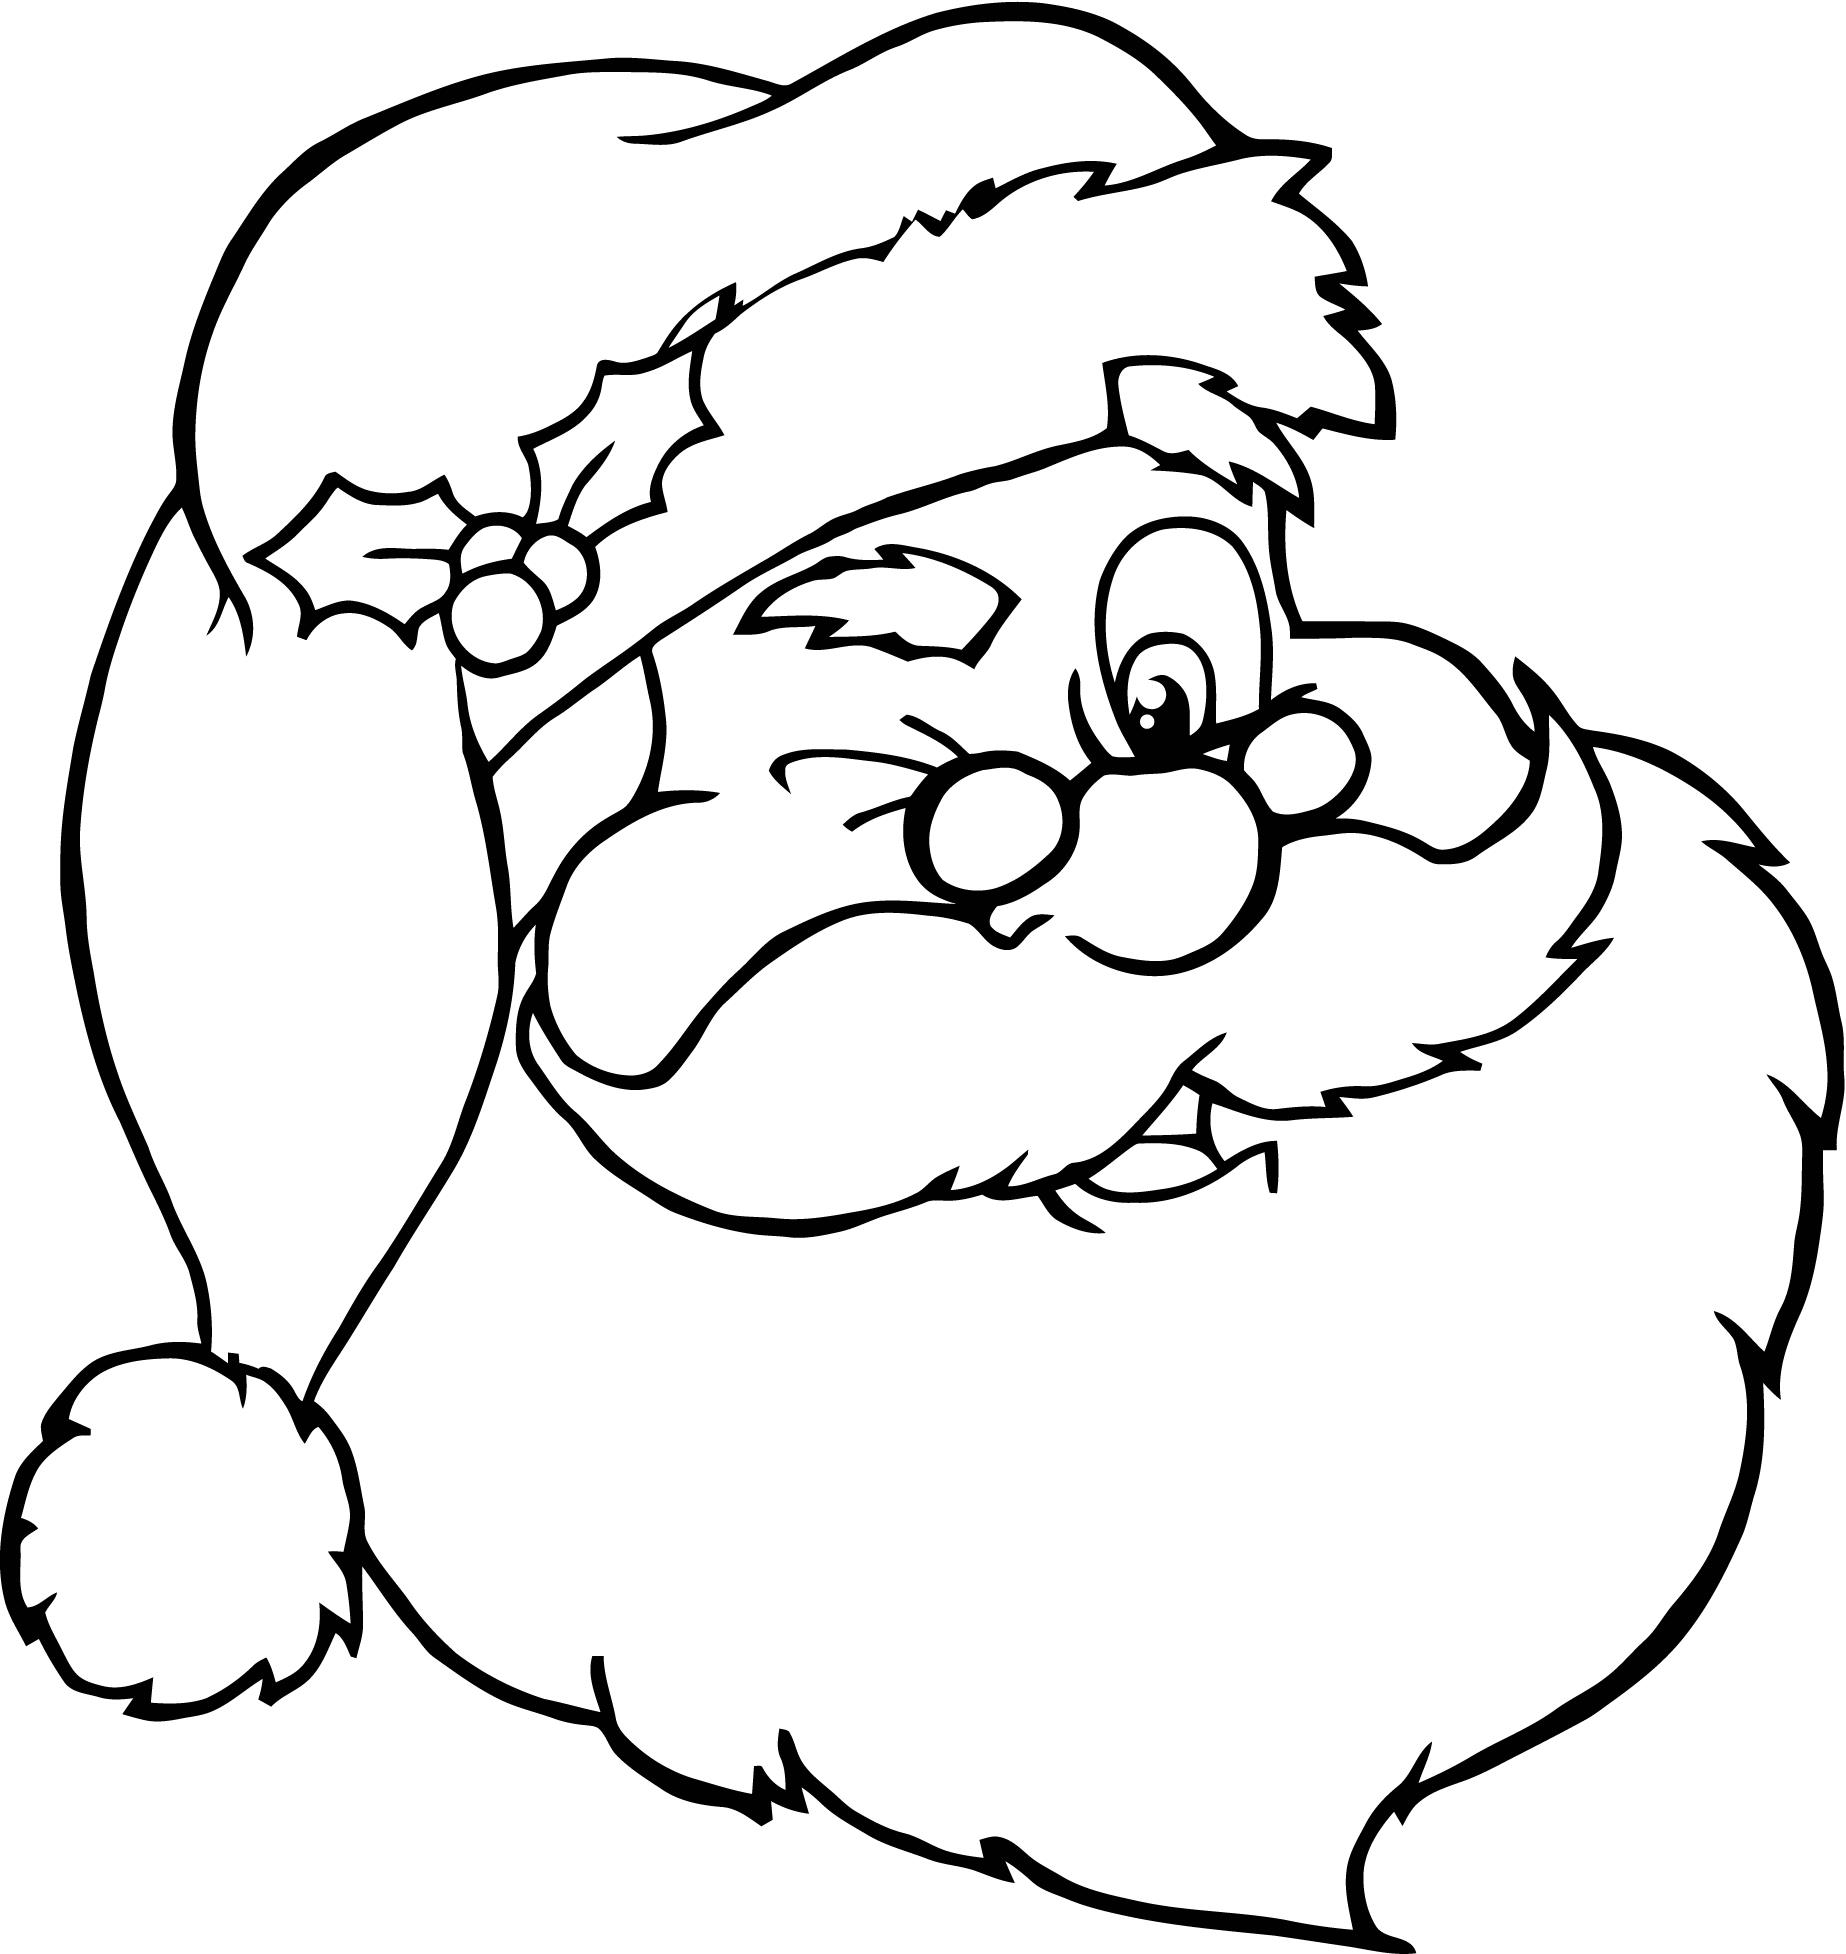 Santa Claus Coloring Book Pages With Awesome Cartoon Design Printable